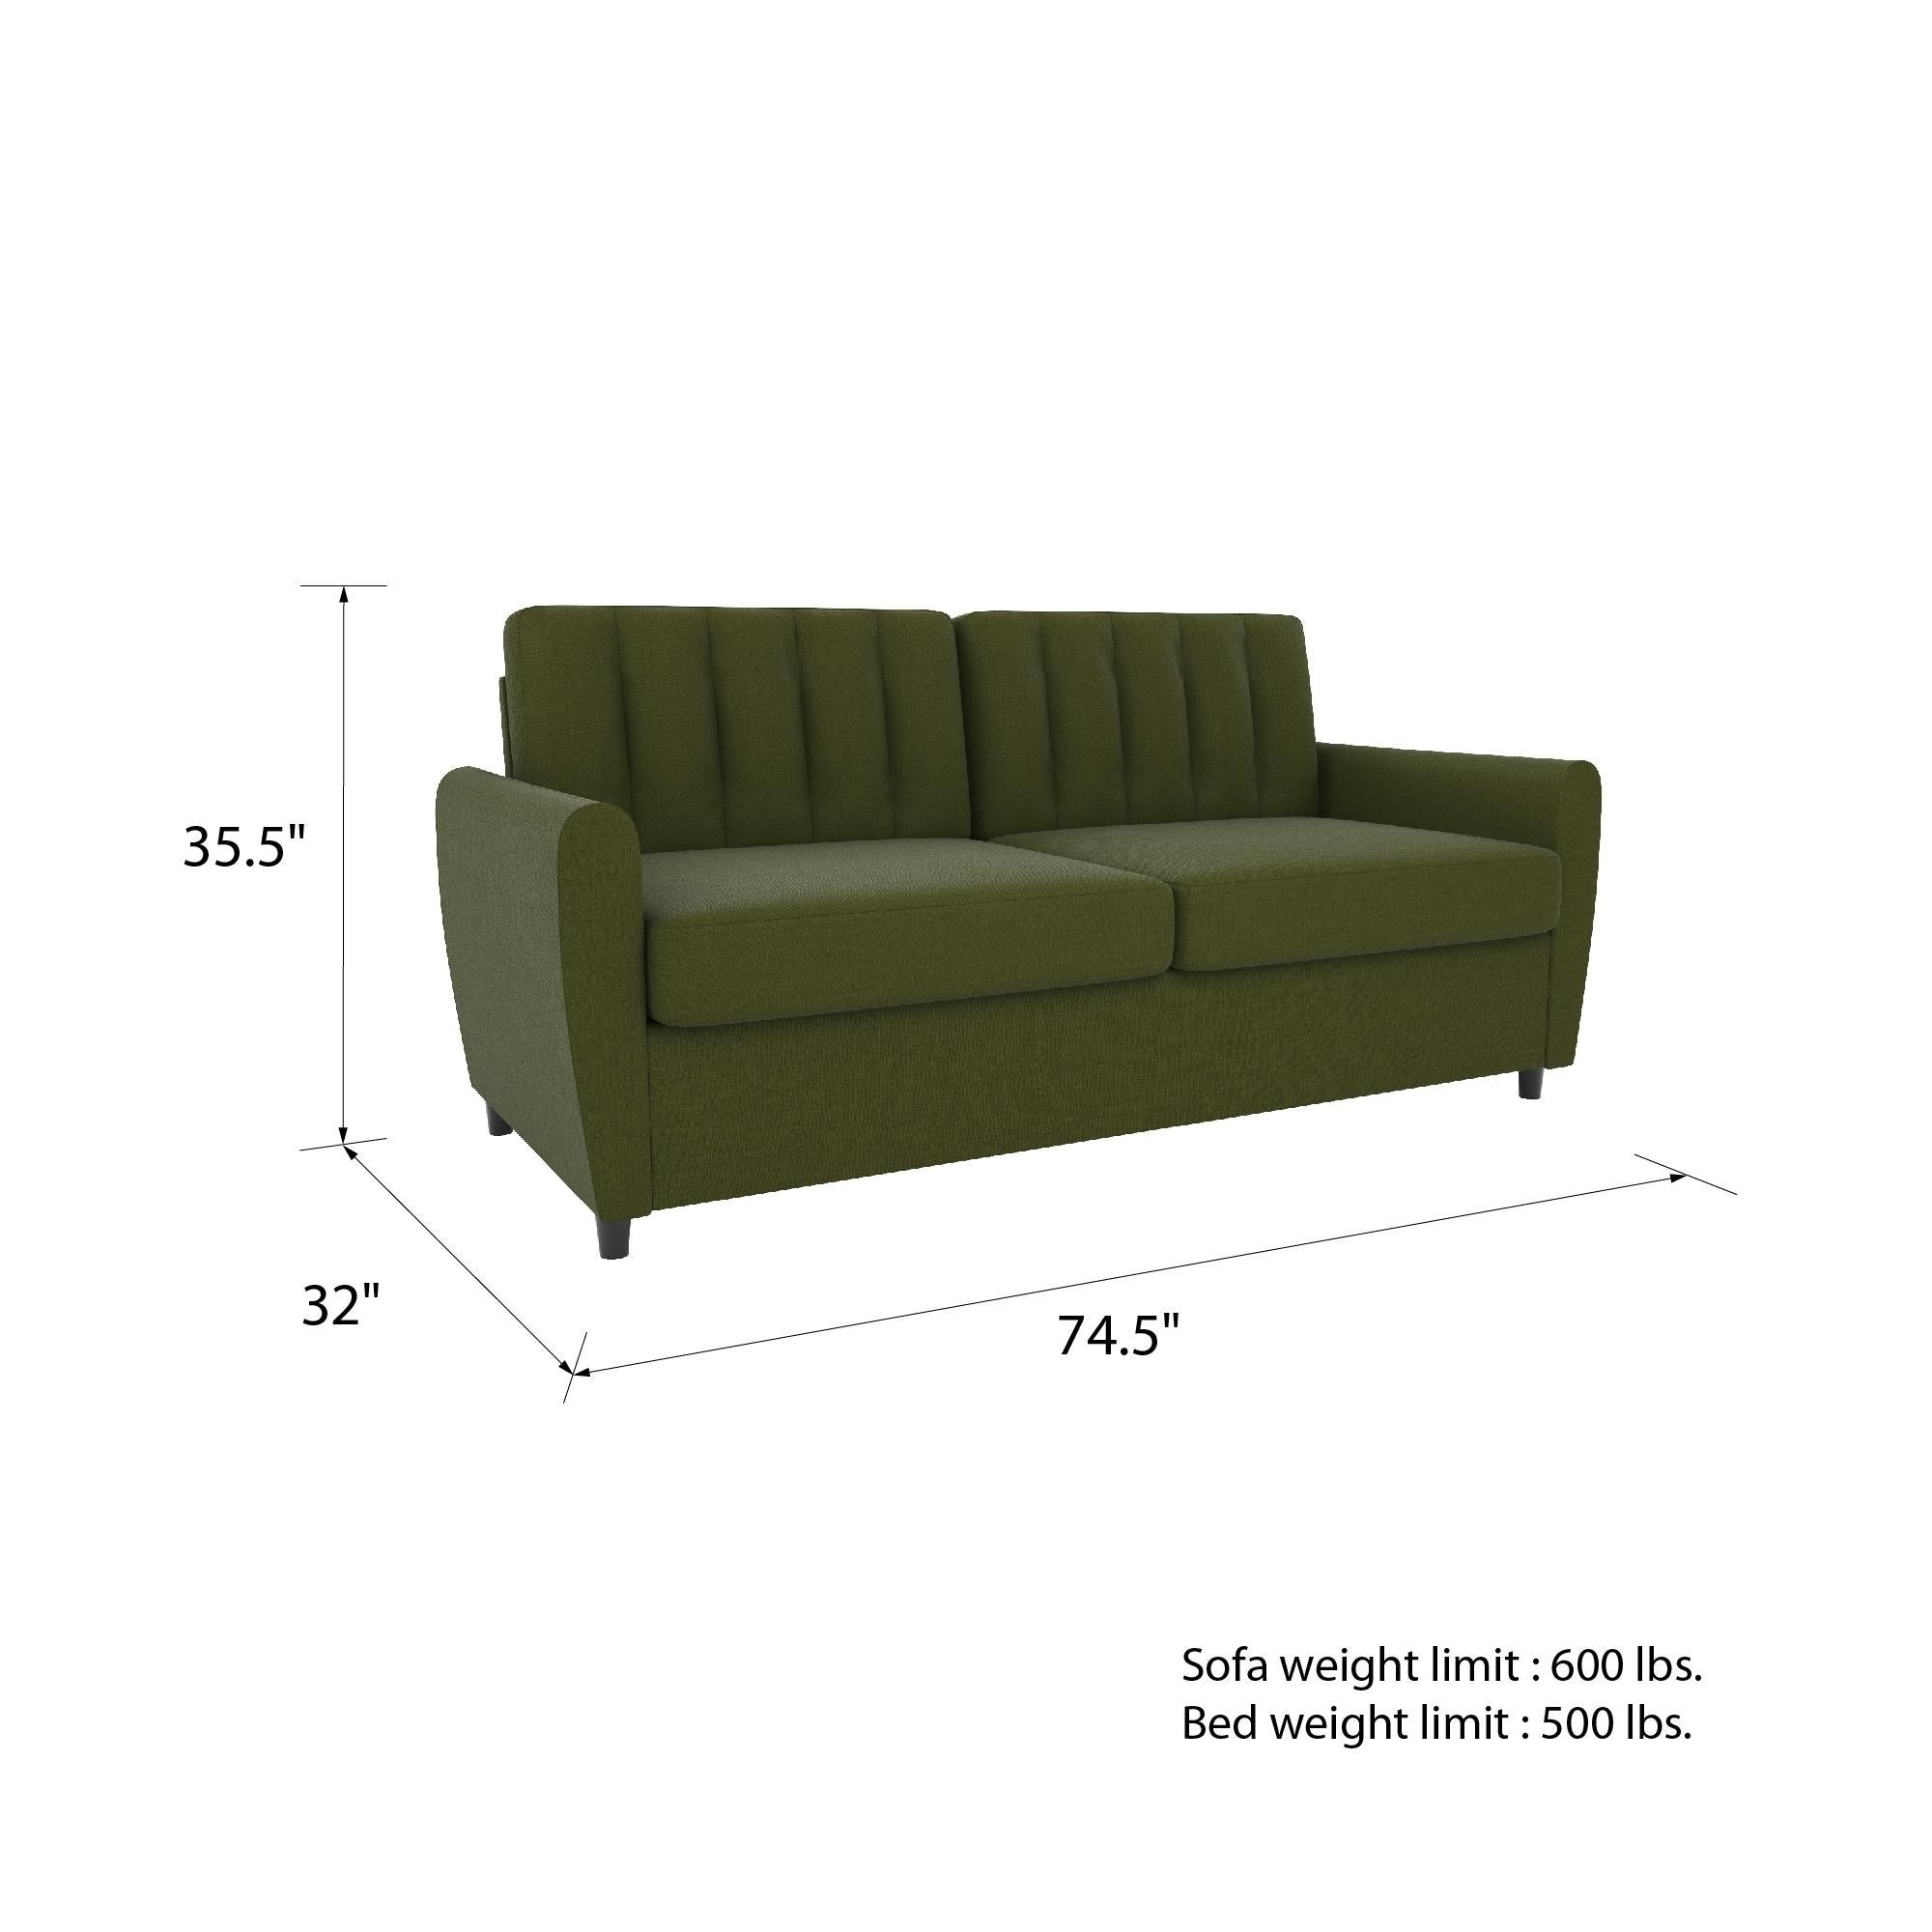 Novogratz Brittany Certipur Us Memory Foam Queen Sleeper Sofa On Free Shipping Today 26299574